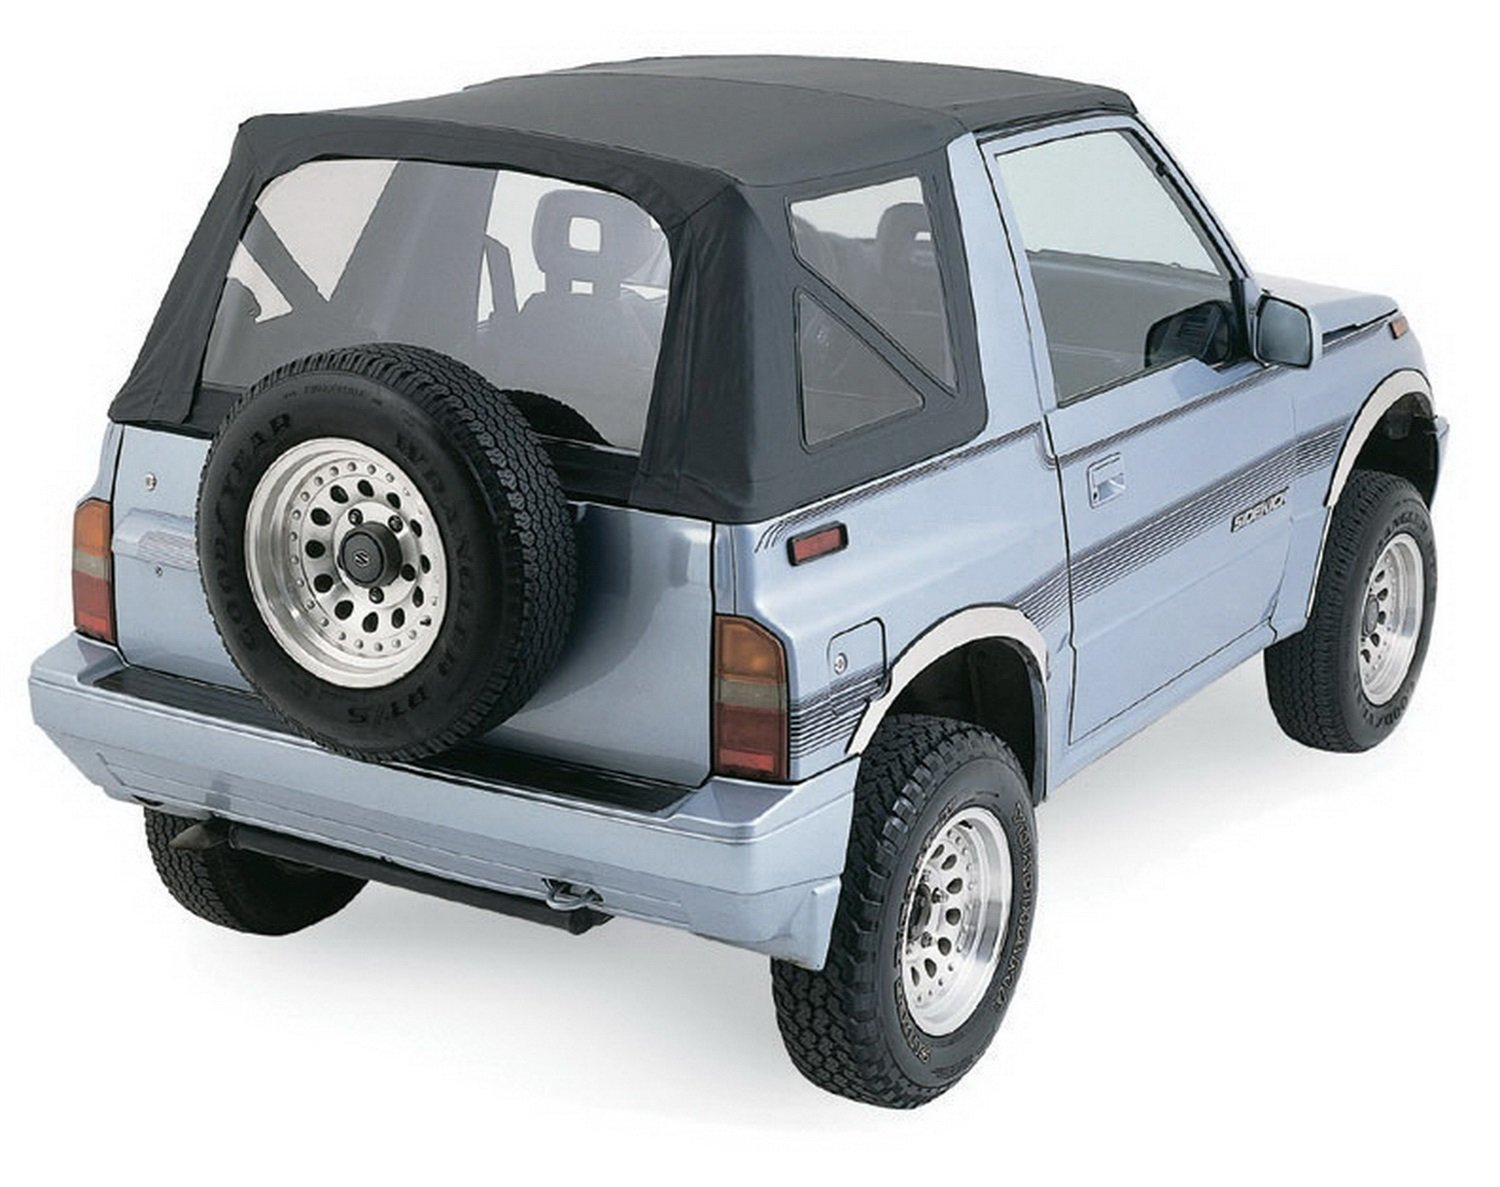 All Chevy 2002 chevrolet tracker parts : Amazon.com: Rampage Jeep 98935 Soft Top, OEM Replacement, 1999 ...